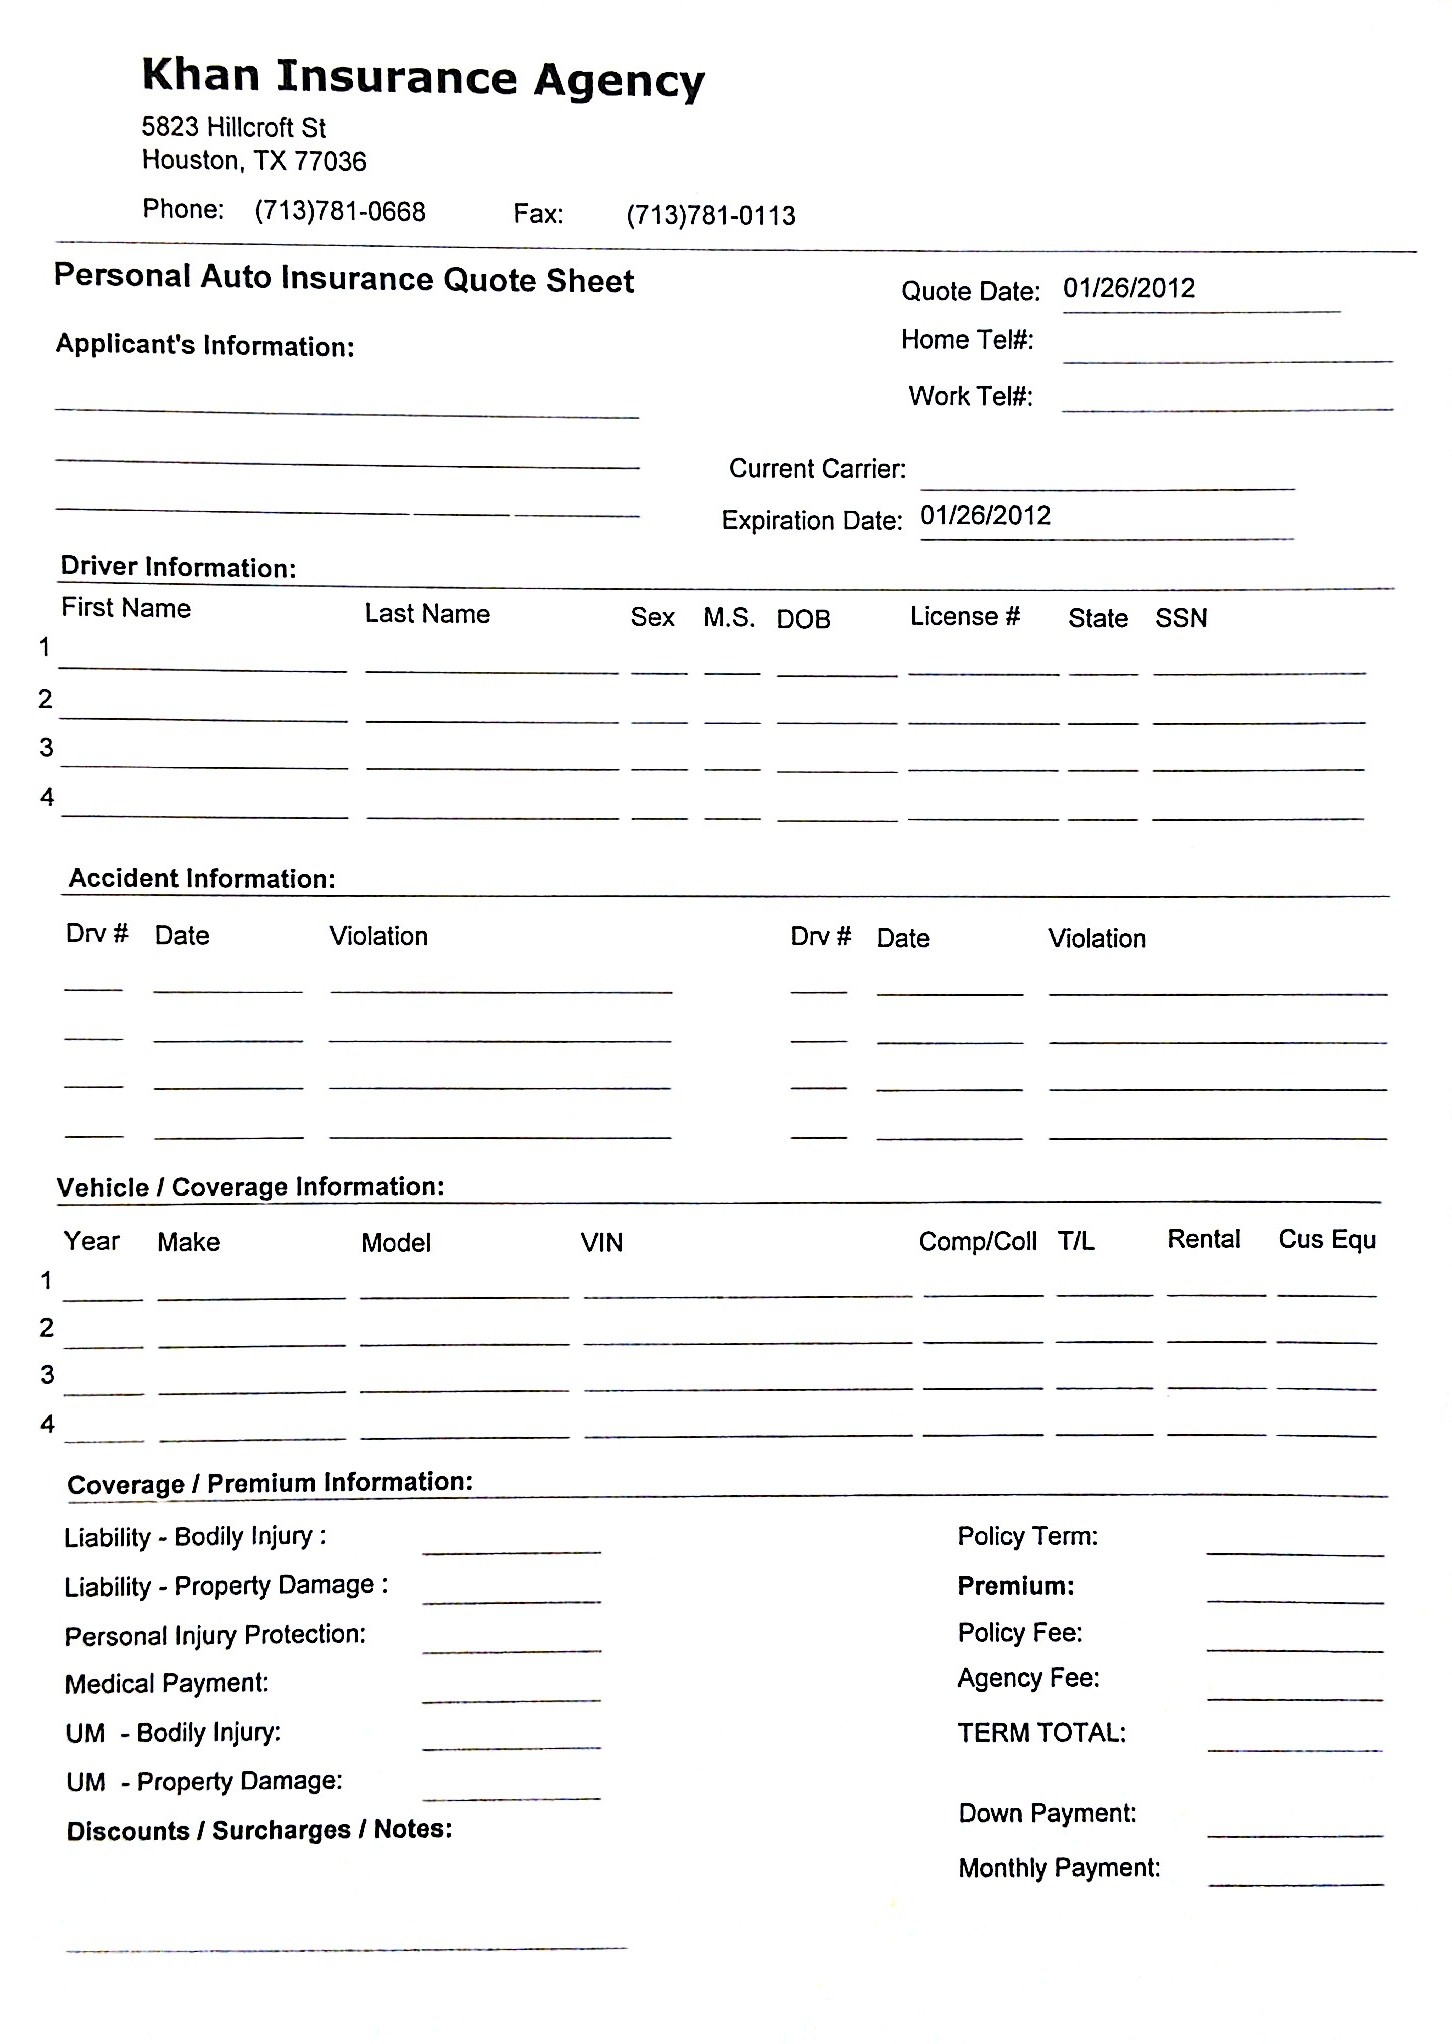 home insurance quote sheet template_5